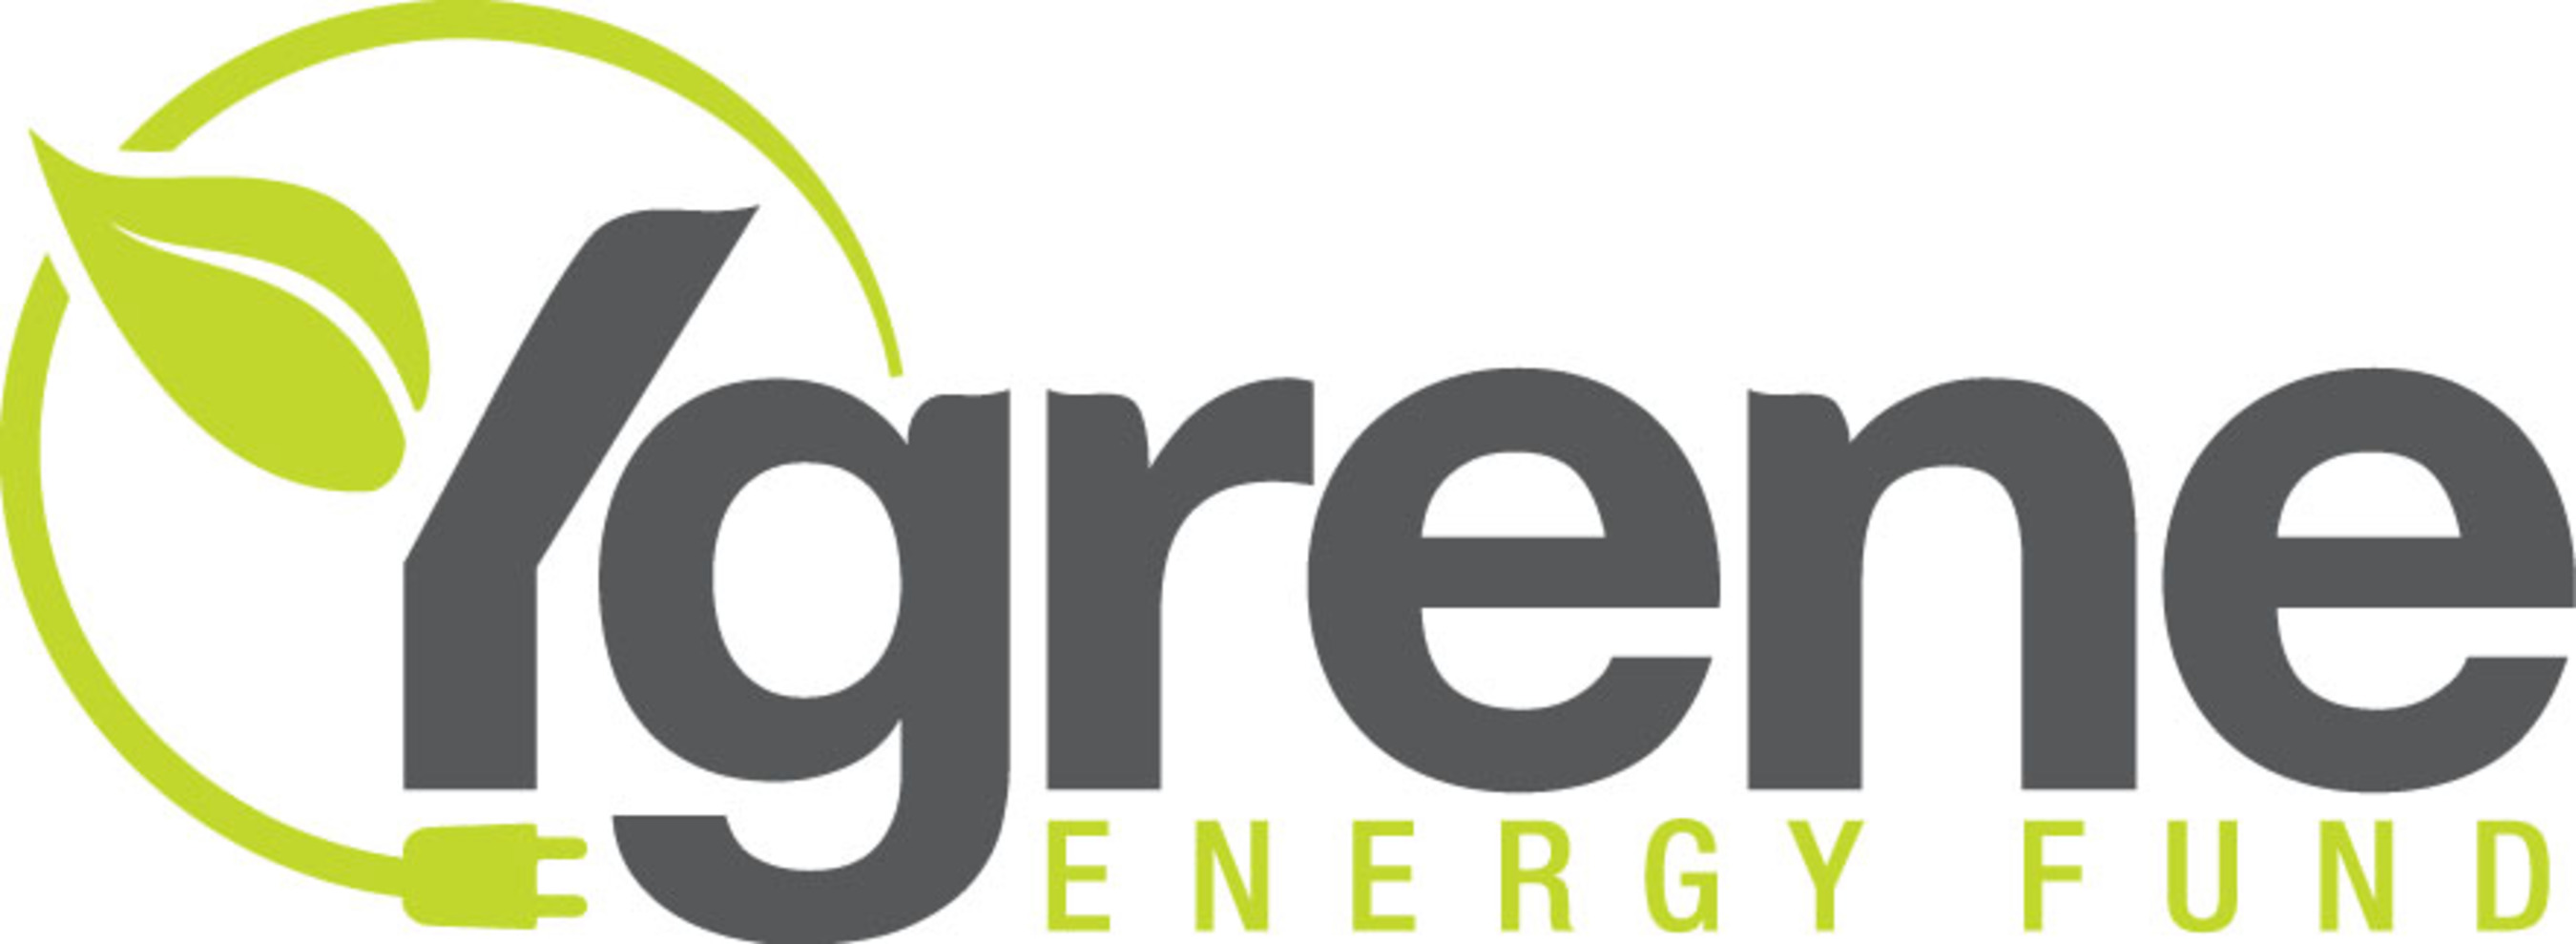 Ygrene Energy Fund Logo.